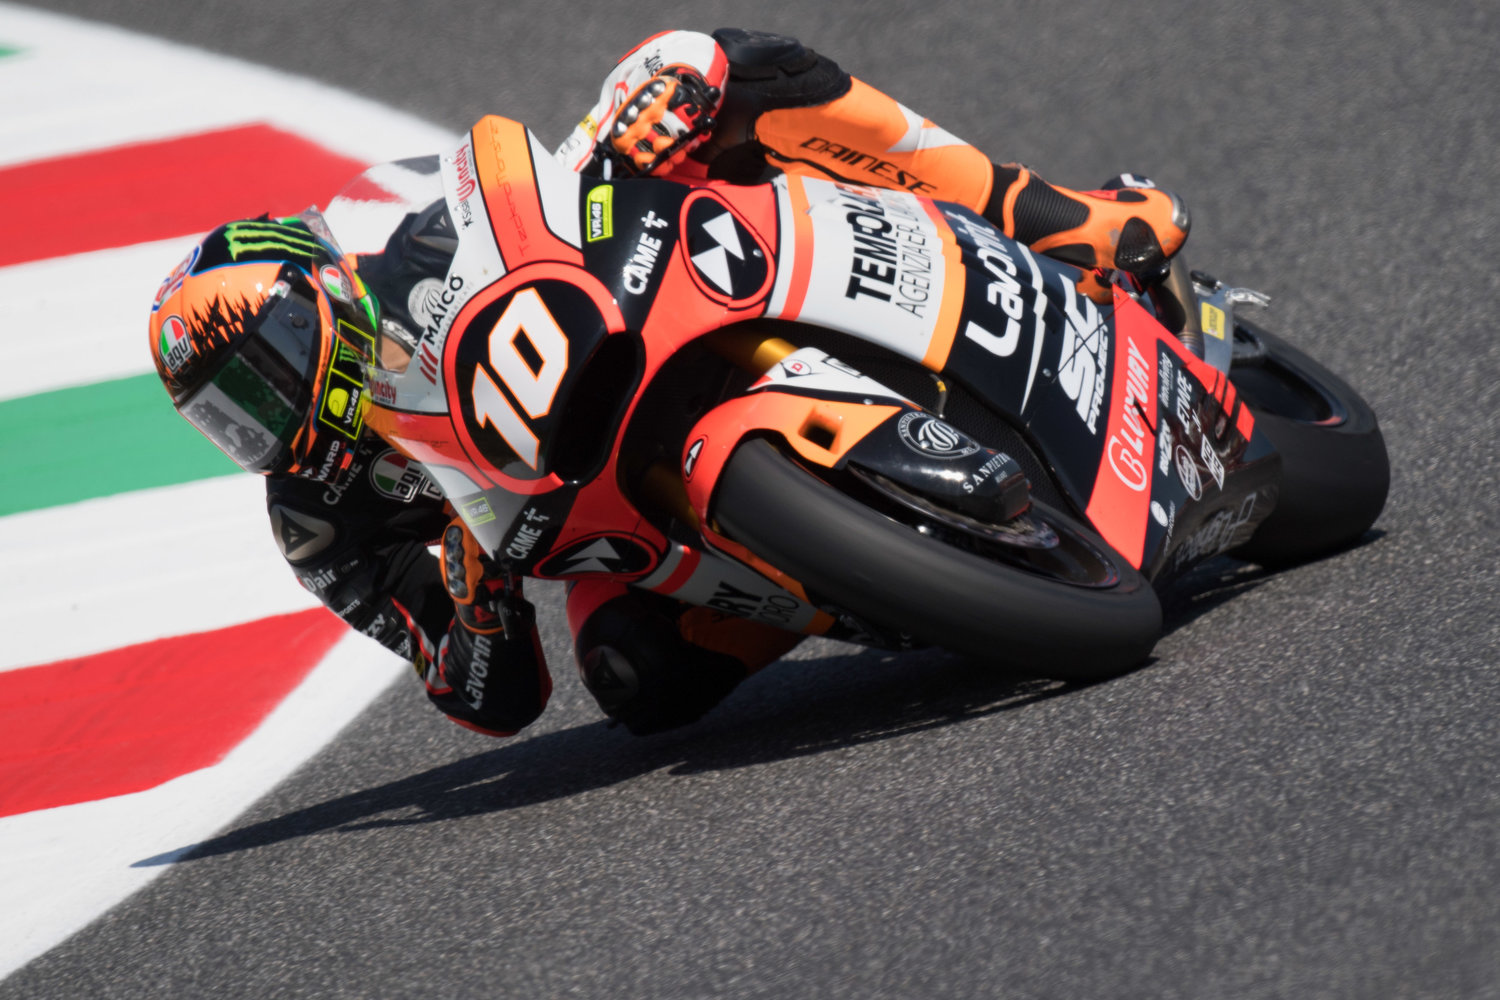 Marini and Baldassarri eager to start home GPfrom 2nd and 3rd row